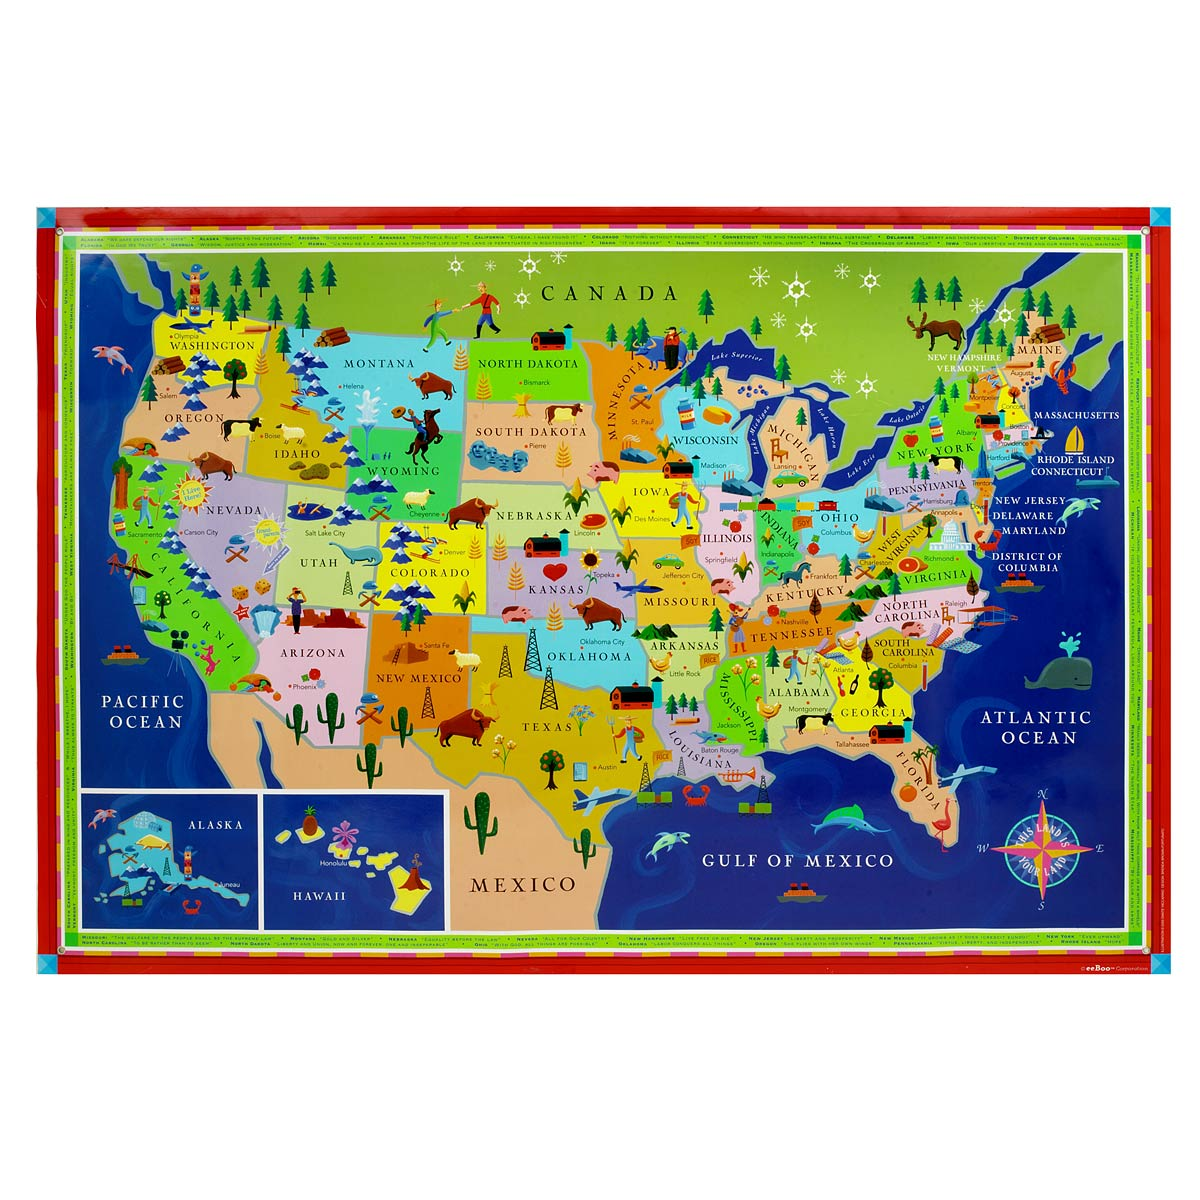 This Land Is Your Land Kids' Map | Children's USA Wall Map ... Kids Wall Maps on palace map, statue map, desk map, plant map, go to the map, green map, inverted map, plate map, atlas map, trench map, floor map, border map, step map, world map, englewood map, home map, large map, glass map, glider map, magnetic map,